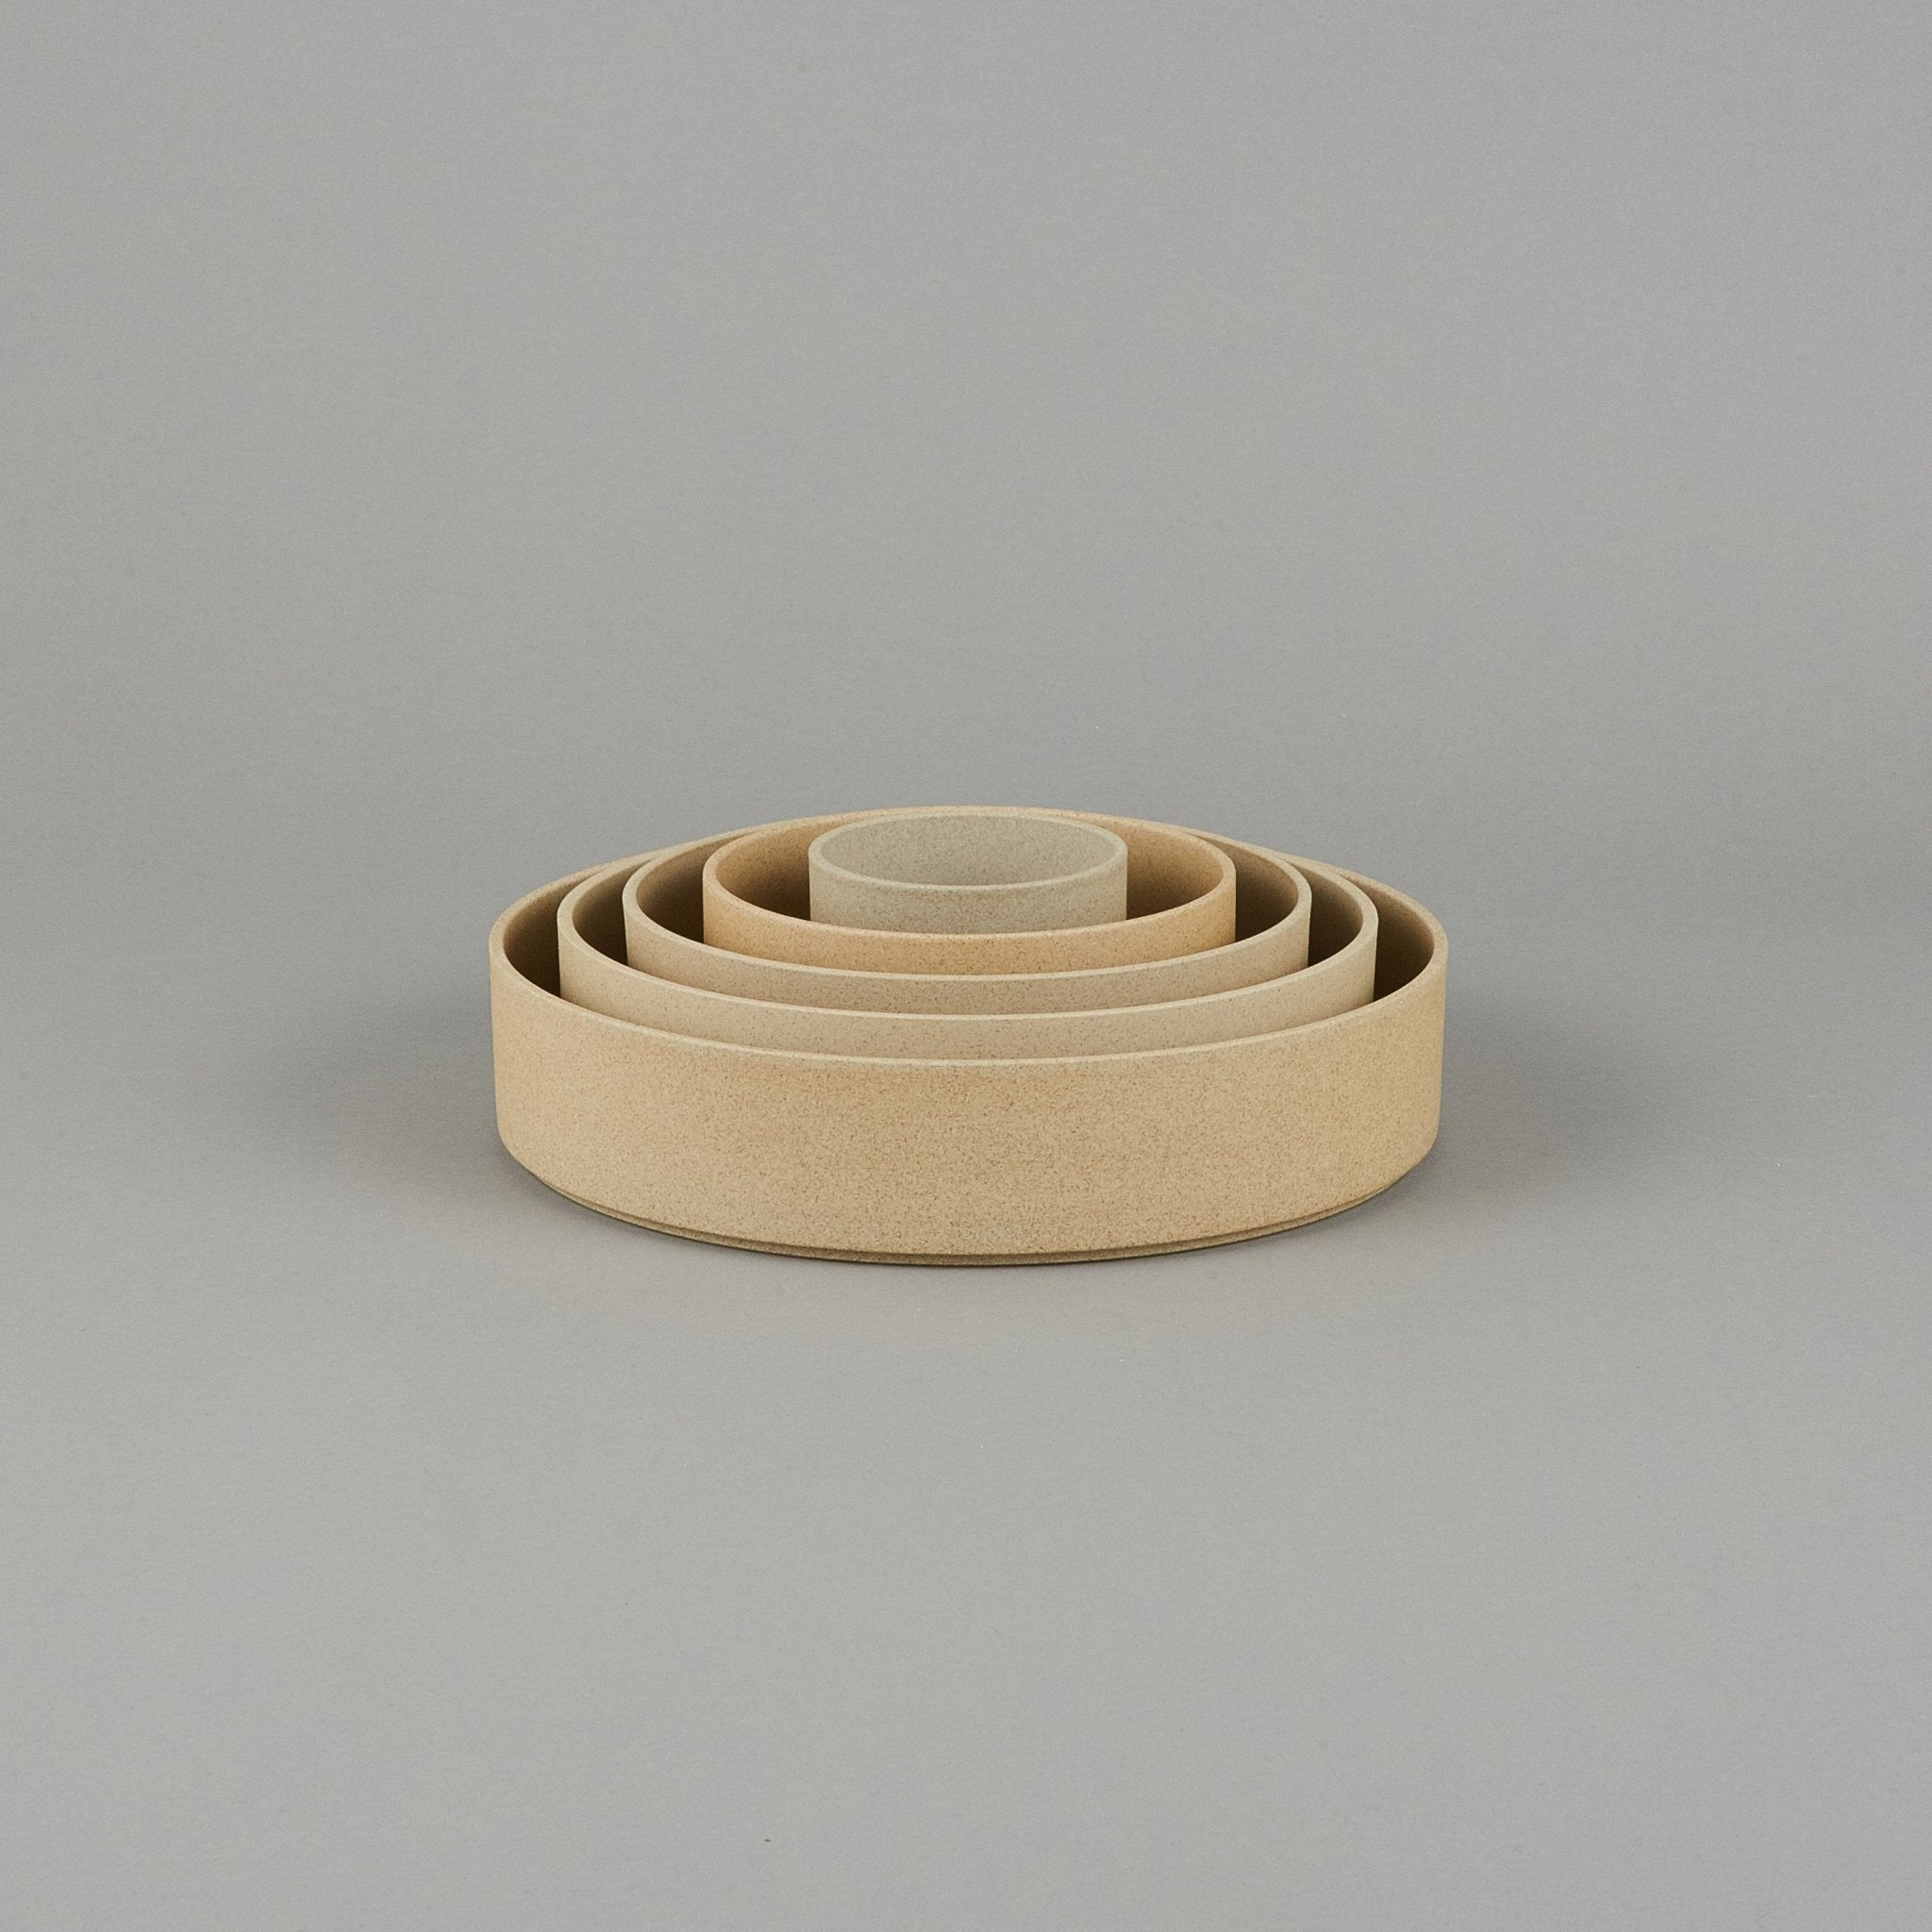 "HP008 - Bowl Natural ø 5.5/8"" - tortoise general store"